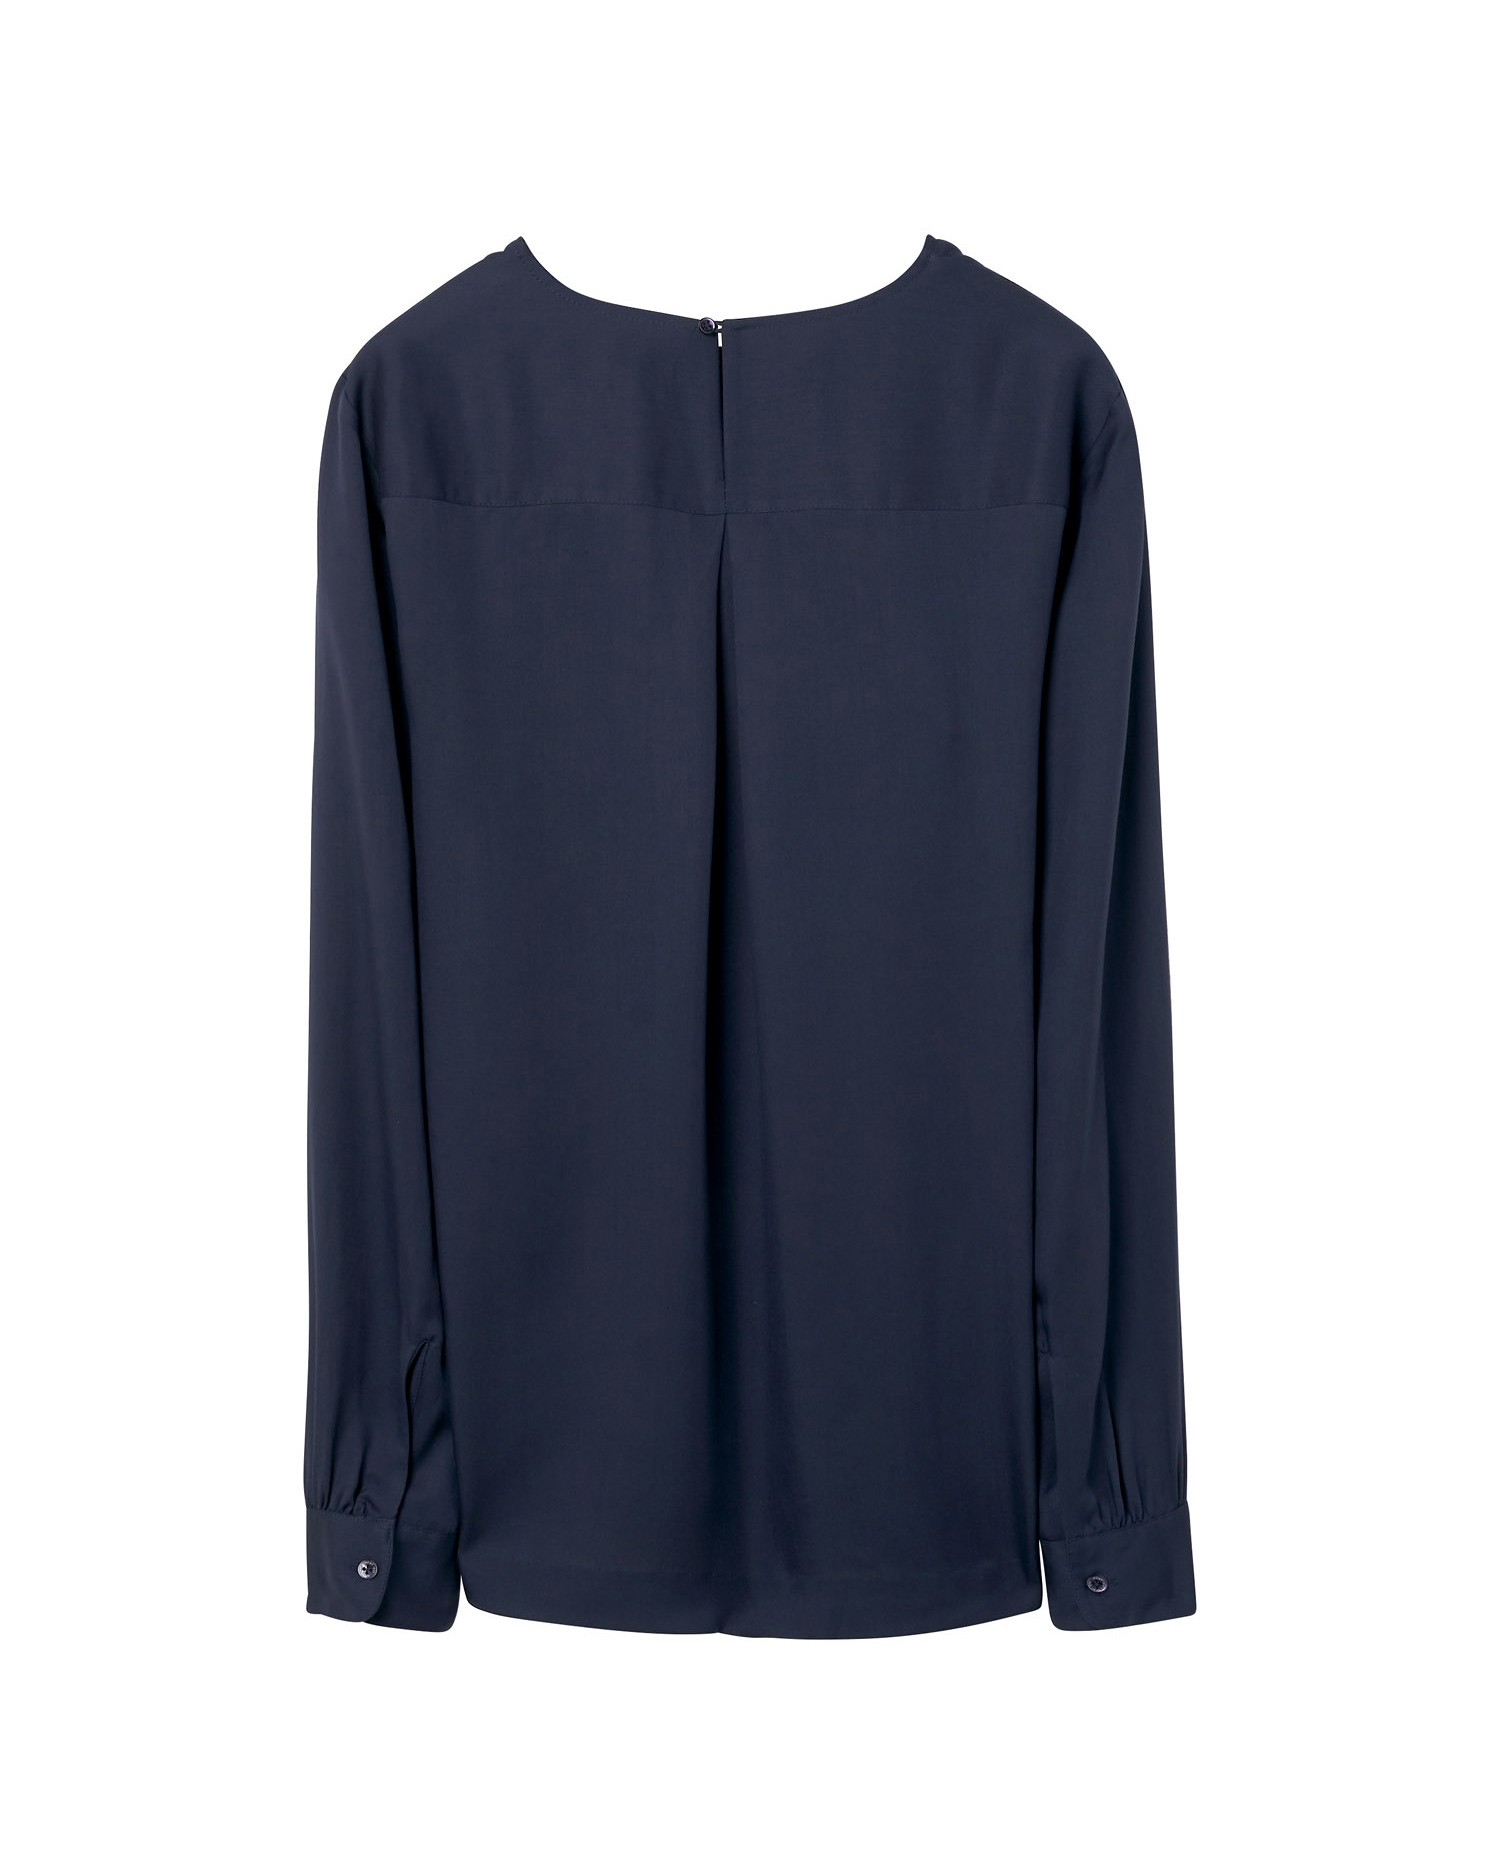 GANT Women's Featherweight Solid Blouse Shirts - 4301049